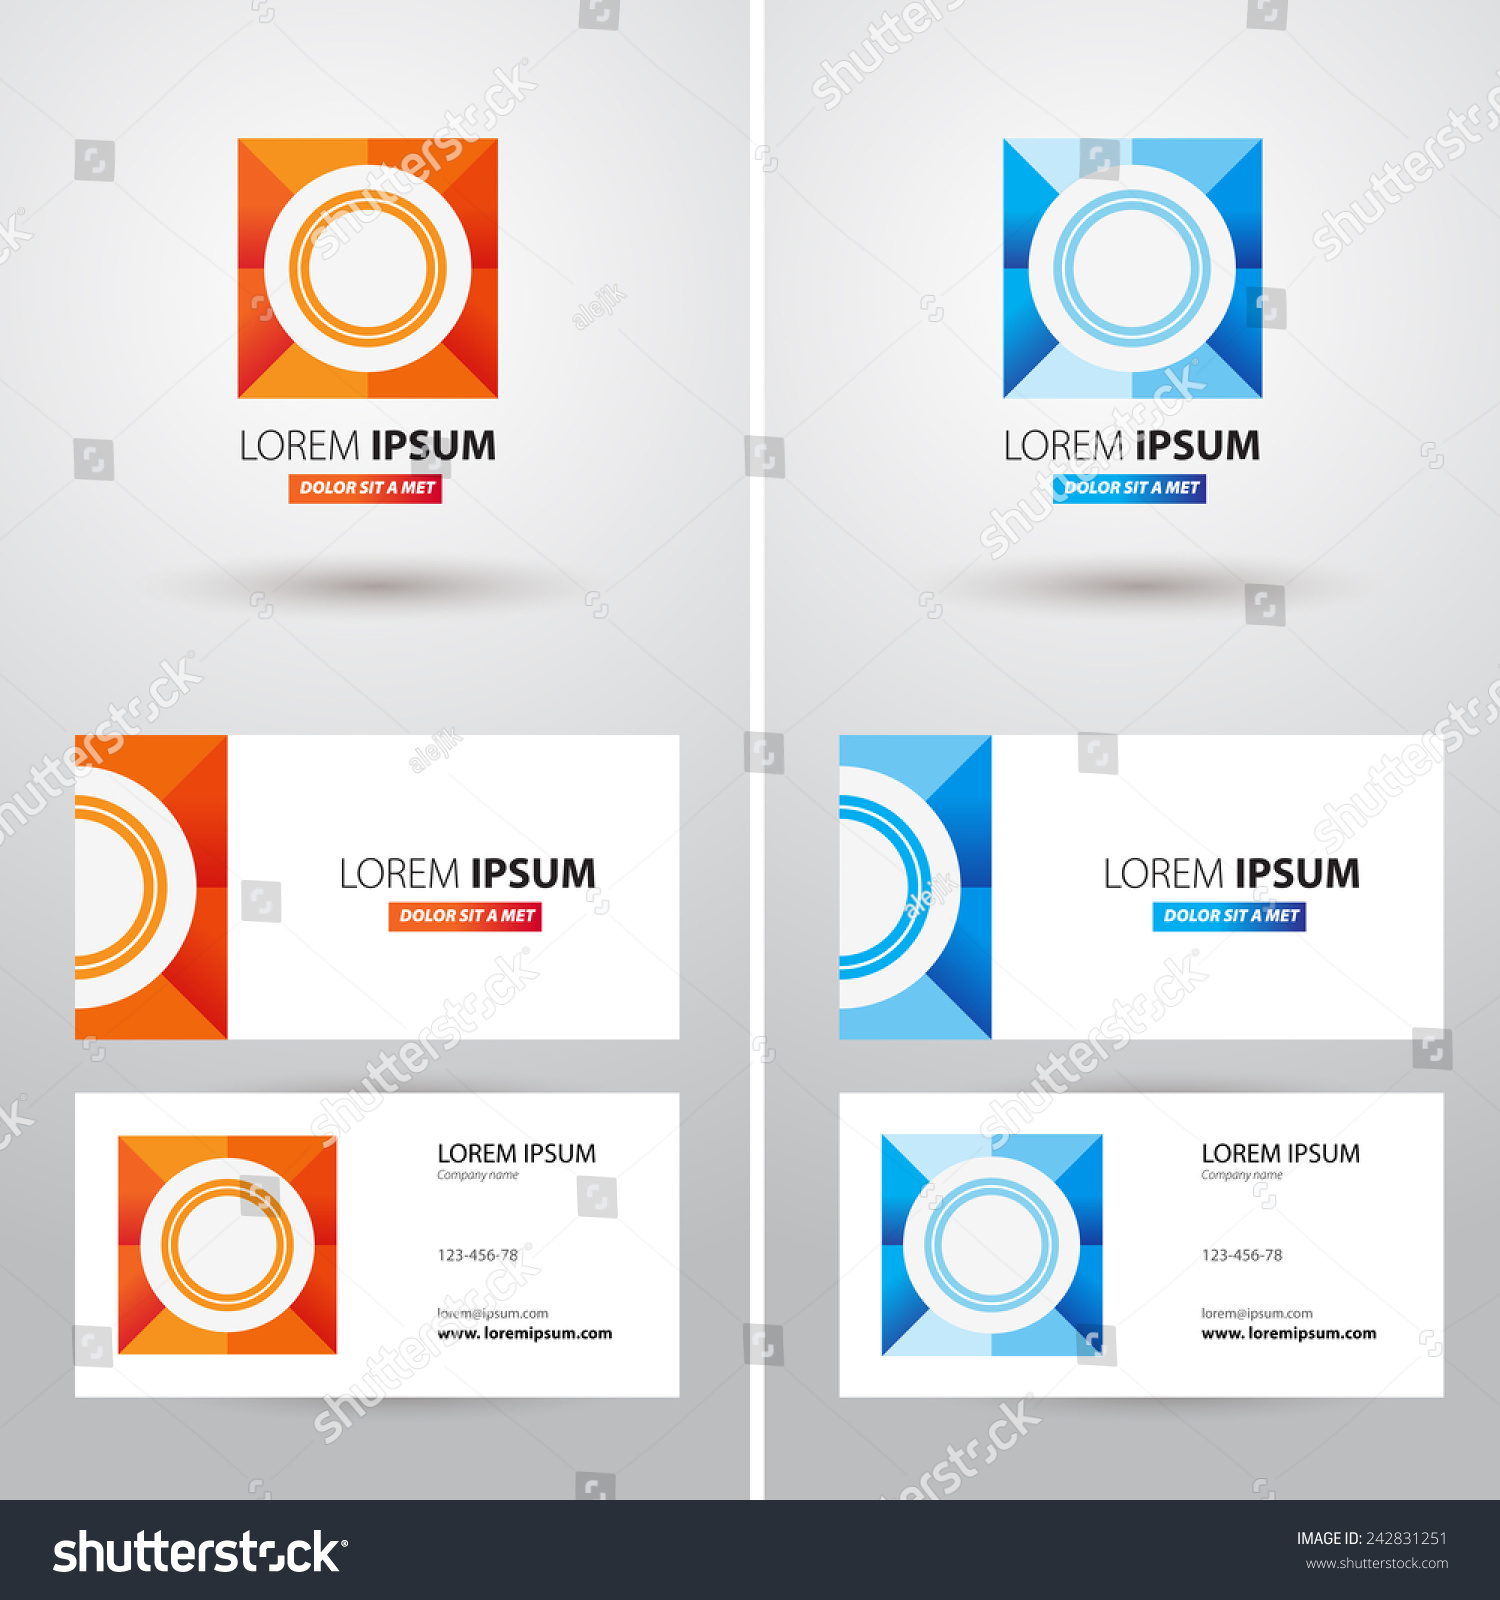 Business Card Logo Text Different Use Stock Vector 242831251 ...